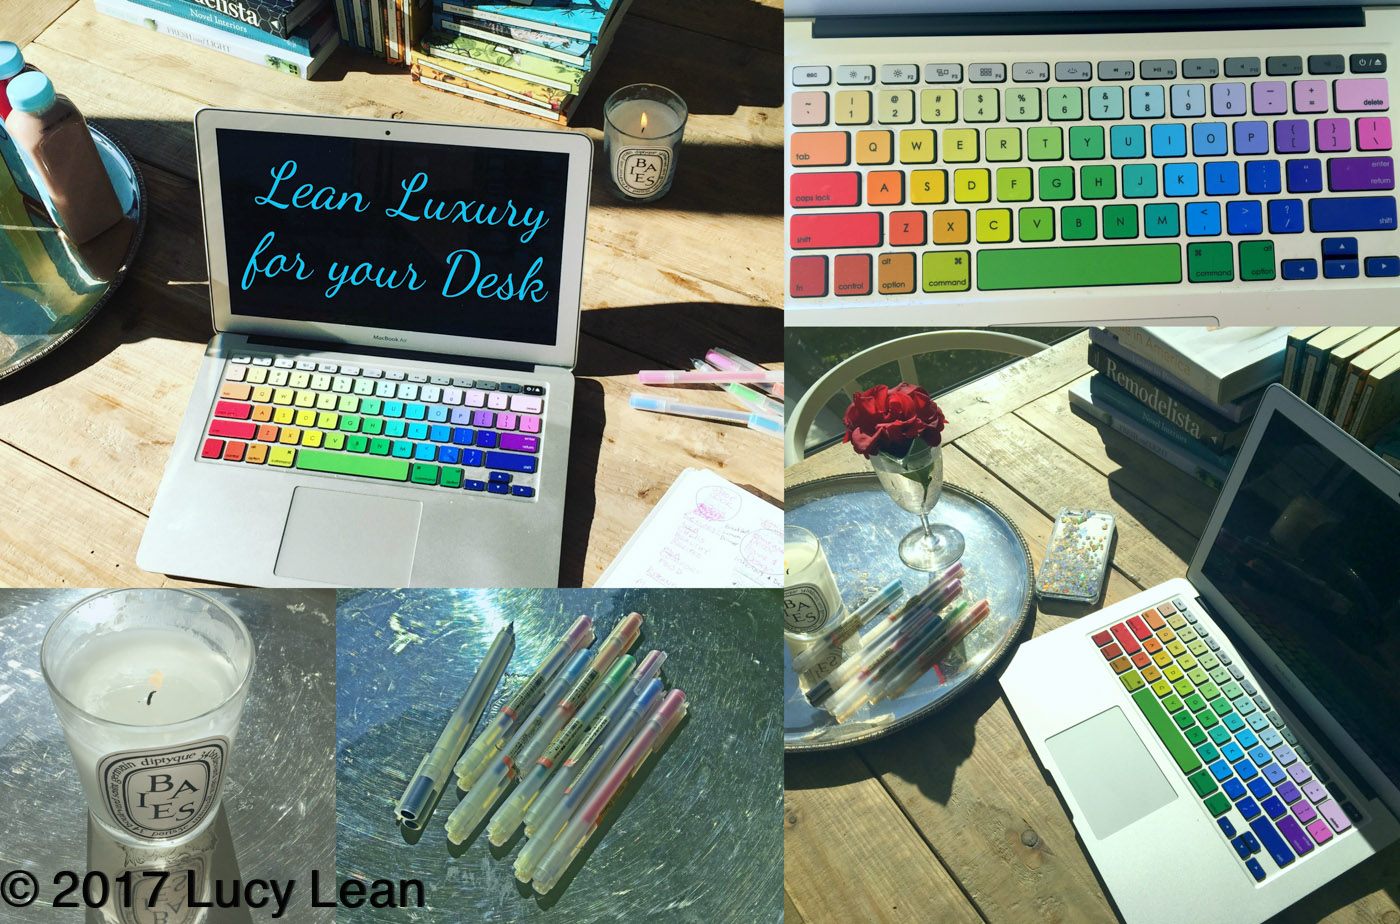 Brighten up 2017 Lean Luxury for your desk